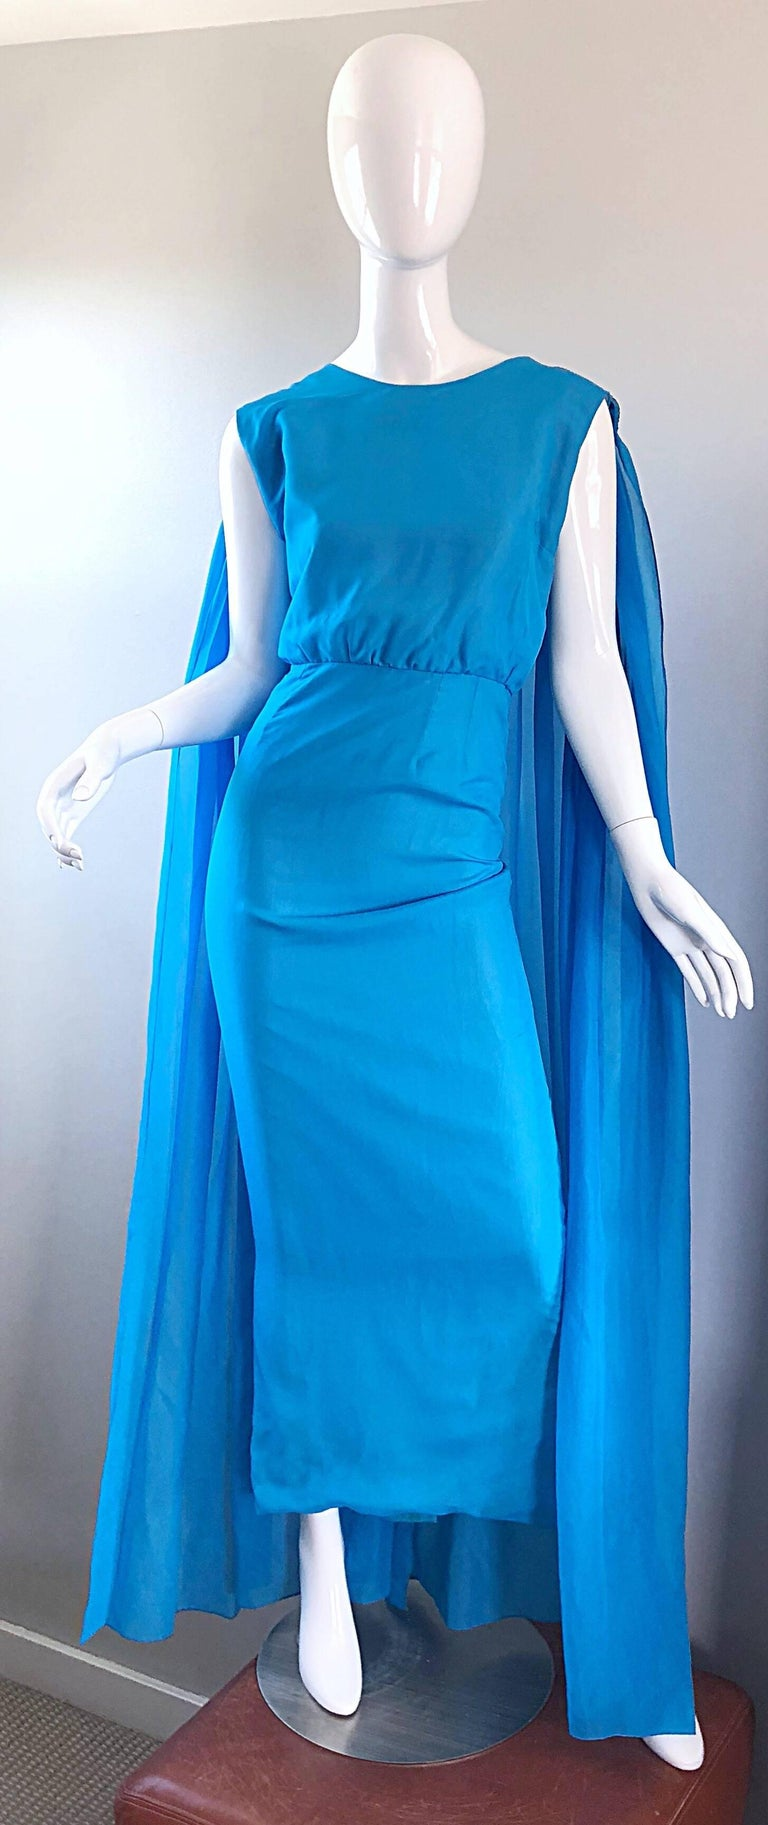 Incredible 1960s Turquoise Blue Chiffon Rhinestone Encrusted Vintage Cape Gown For Sale 4